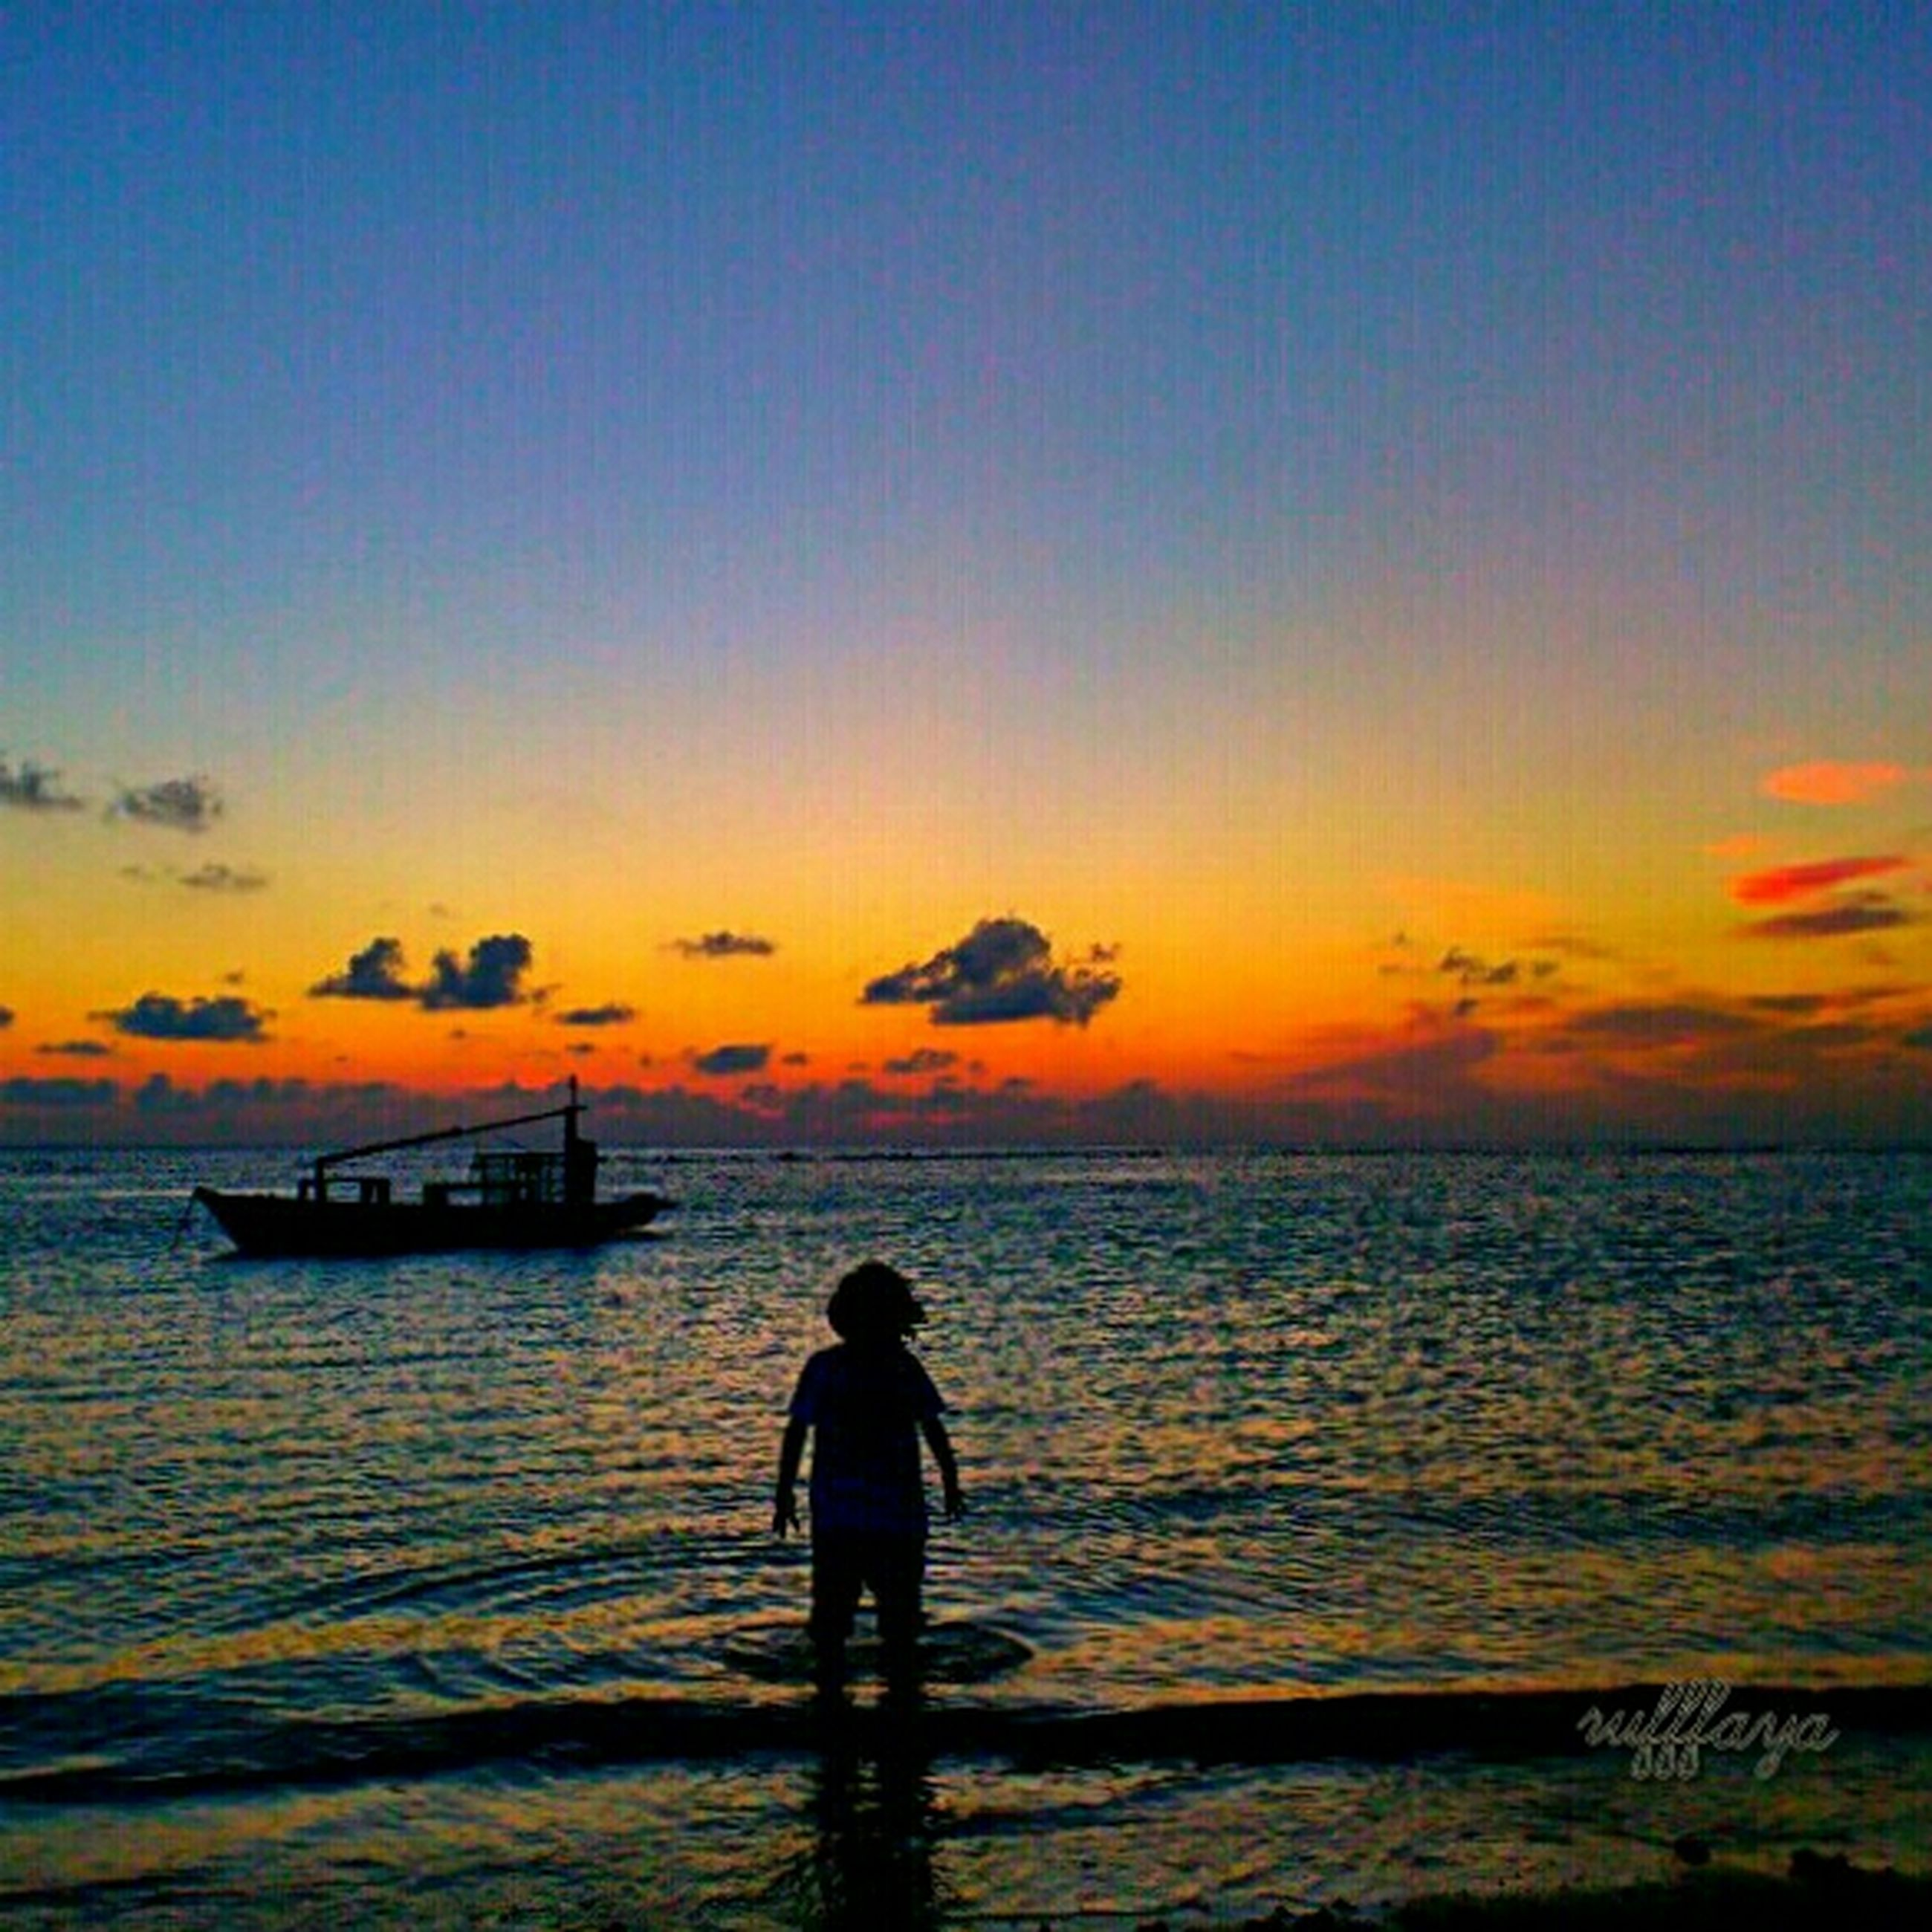 sea, water, sunset, horizon over water, beach, leisure activity, scenics, lifestyles, tranquil scene, sky, standing, tranquility, beauty in nature, silhouette, rear view, orange color, shore, idyllic